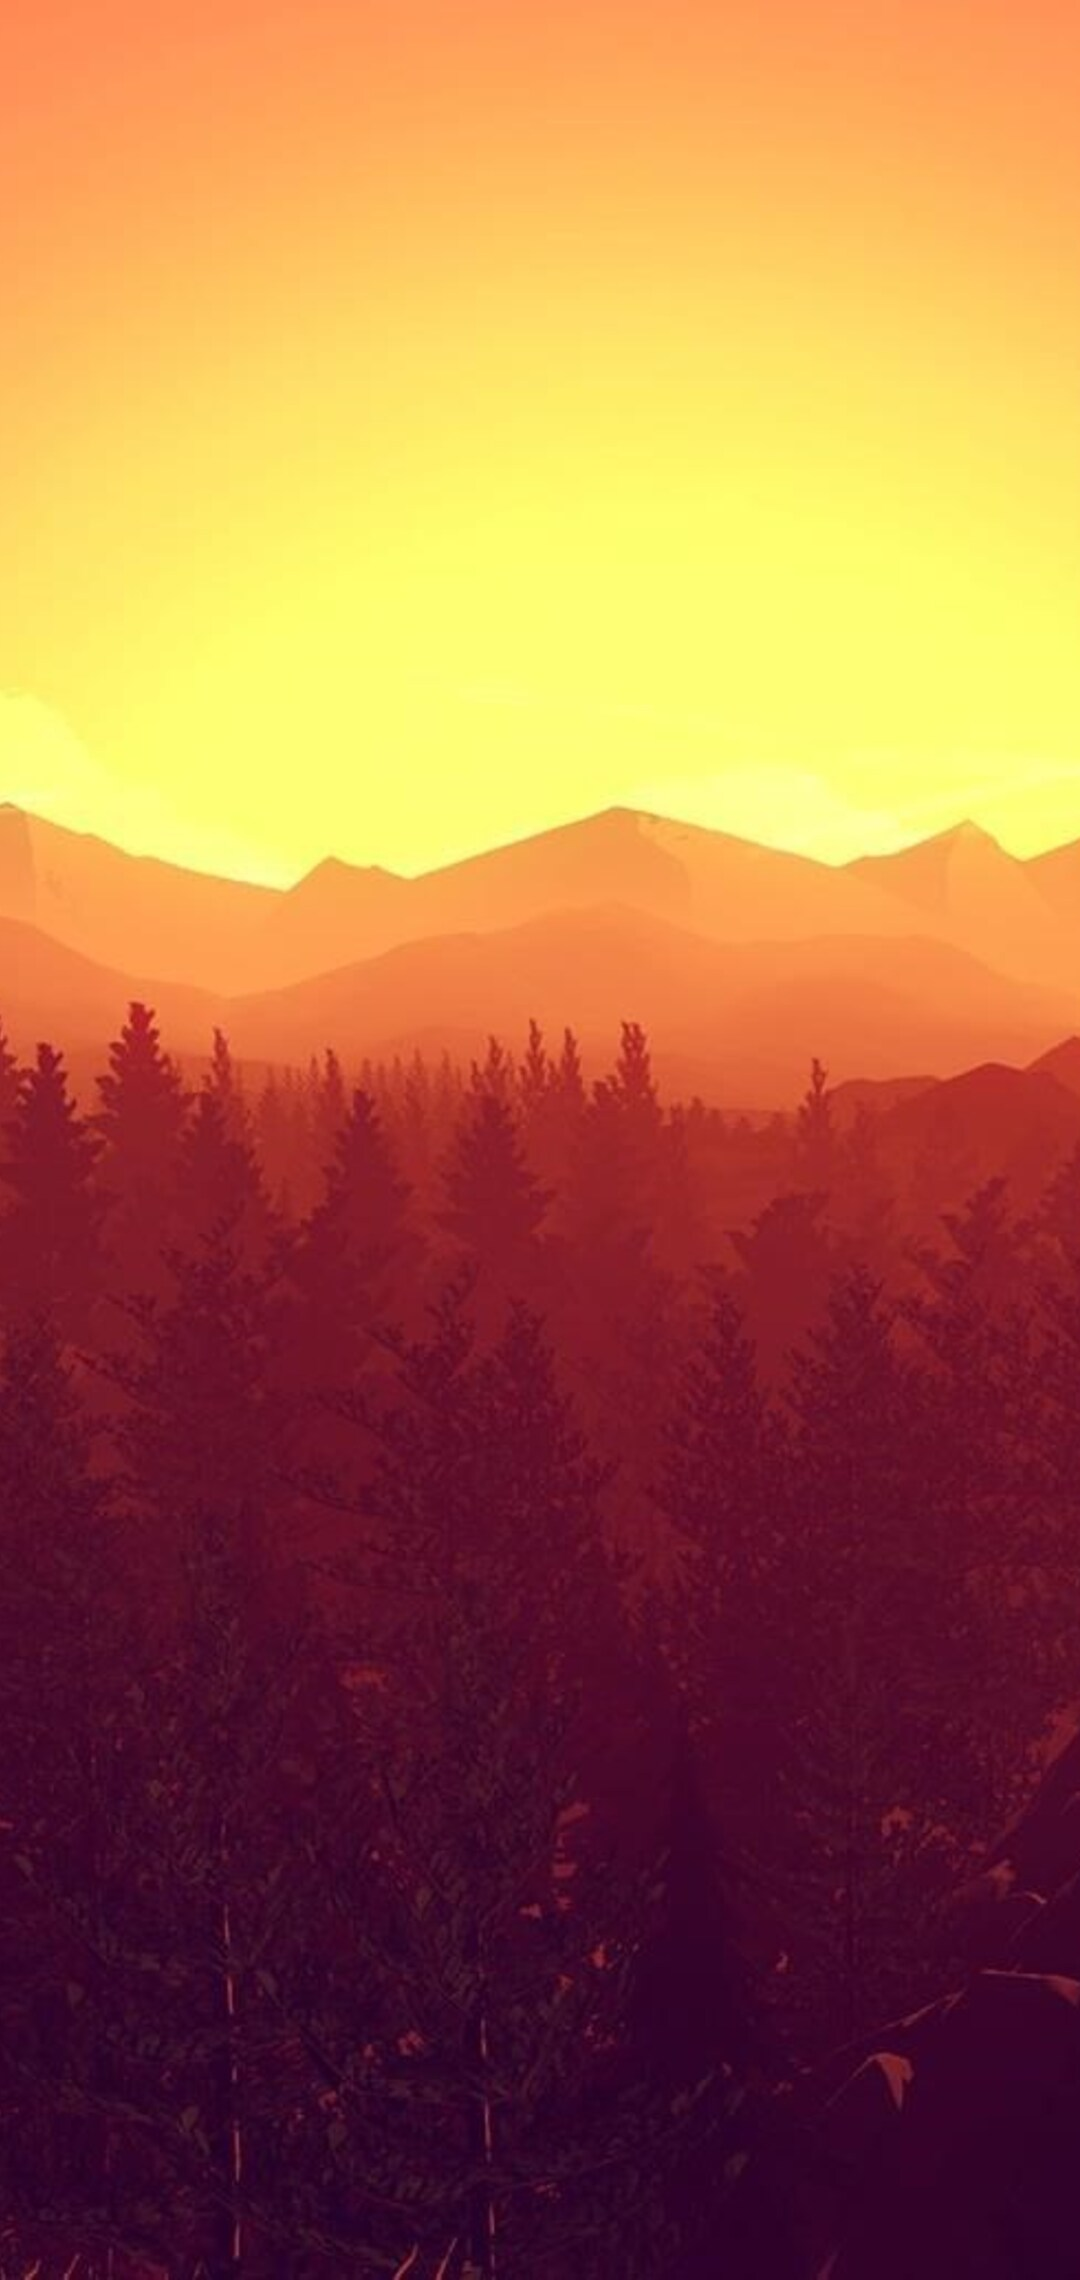 1080x2280 Firewatch Video Games One Plus 6huawei P20honor View 10